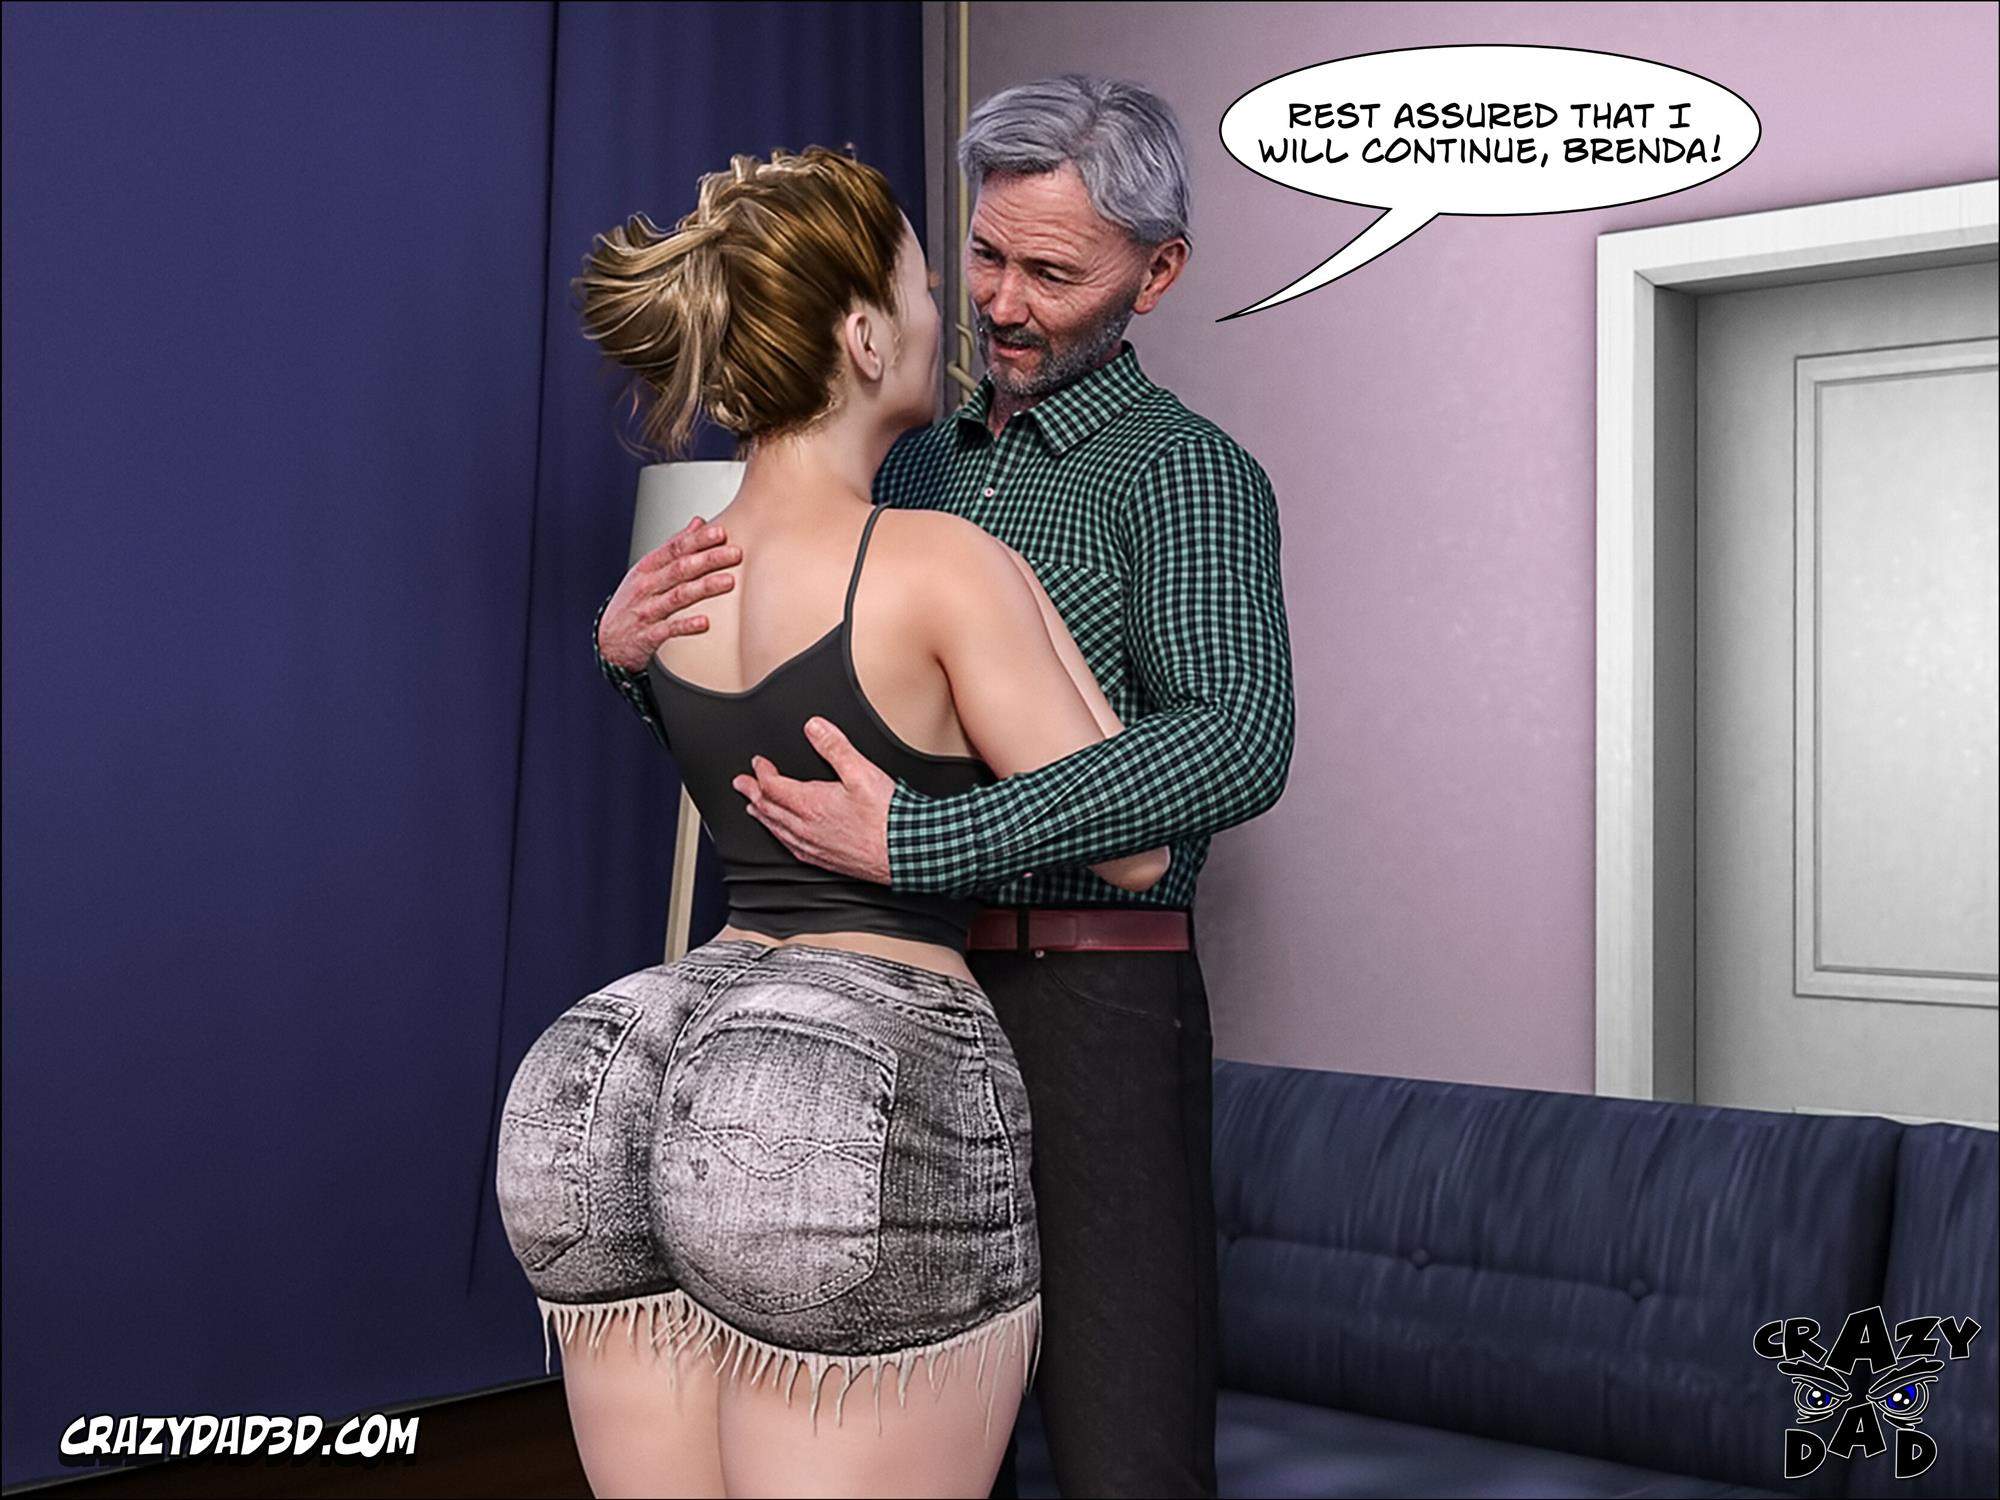 Father-in-Law at Home 10 [Crazy Dad 3D] - Foto 57